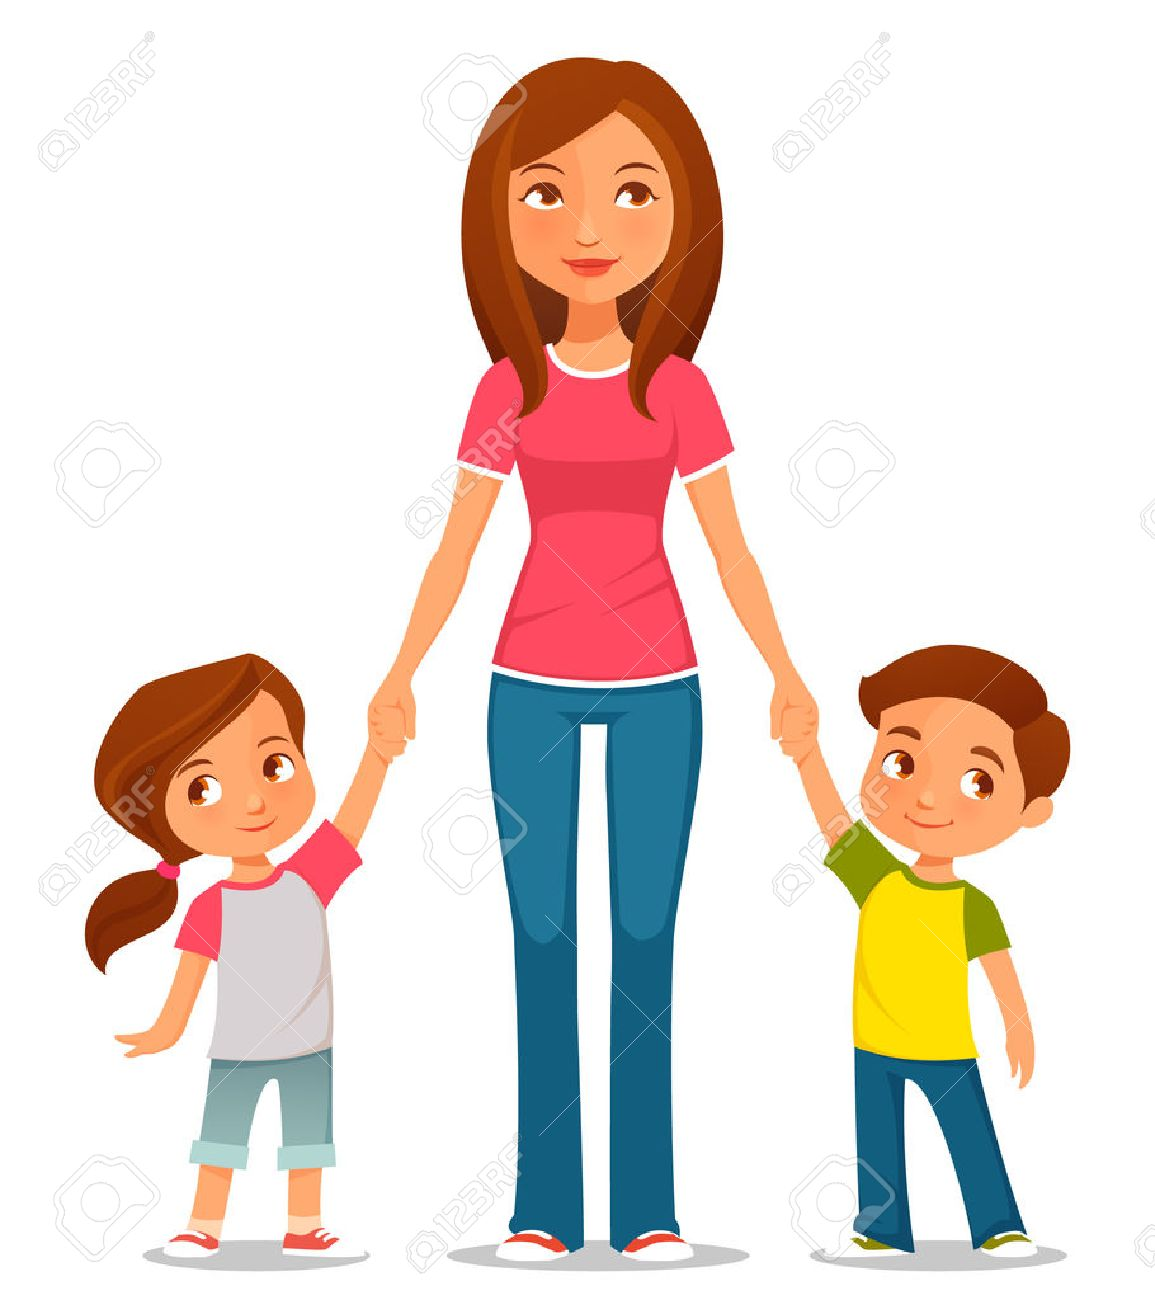 Single parent family clipart clip royalty free stock Single parent family clipart 4 » Clipart Station clip royalty free stock